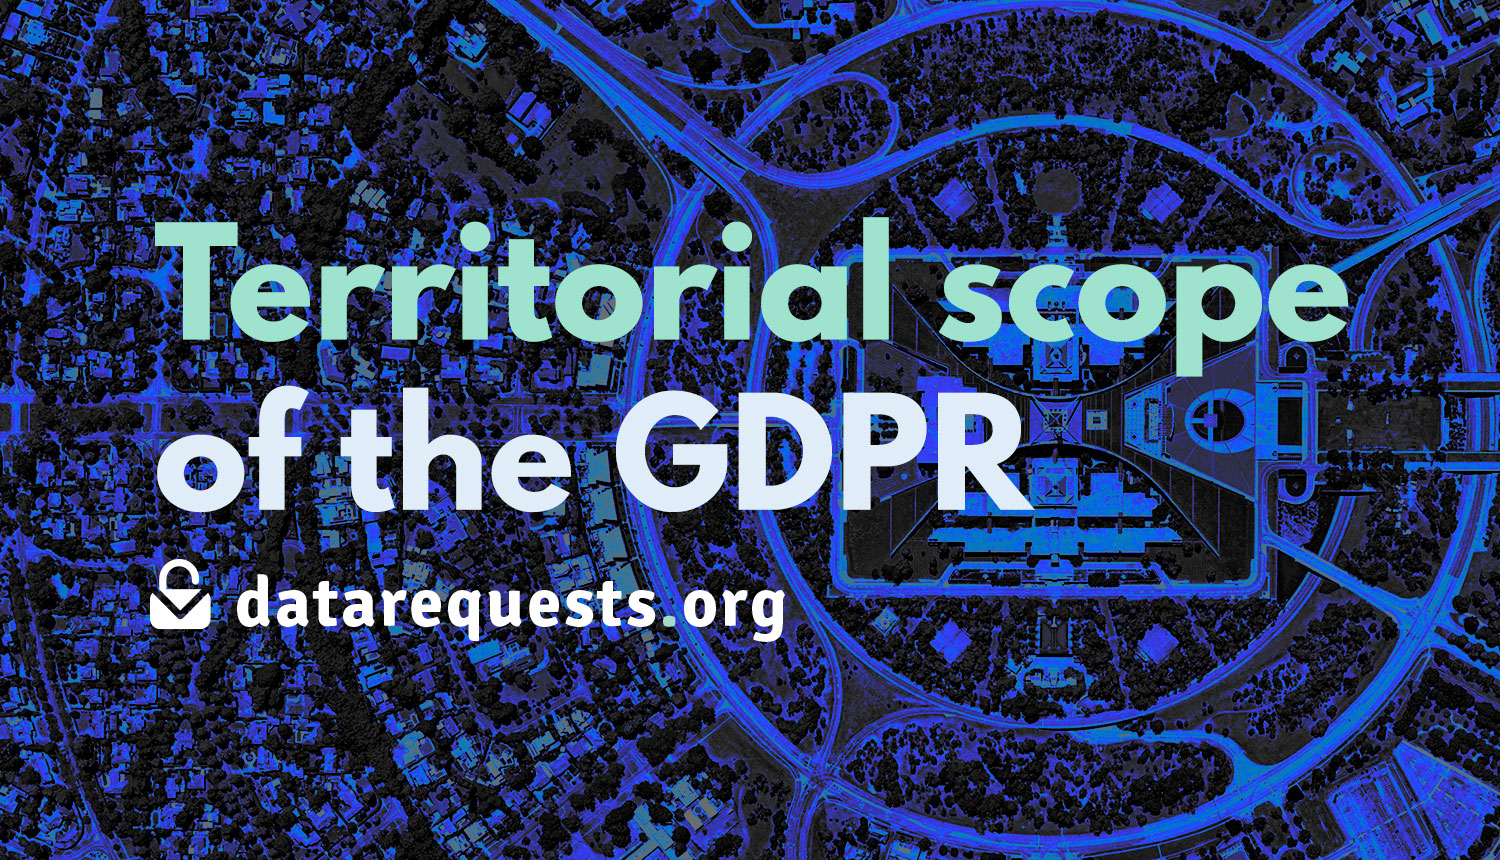 Territorial scope of the GDPR